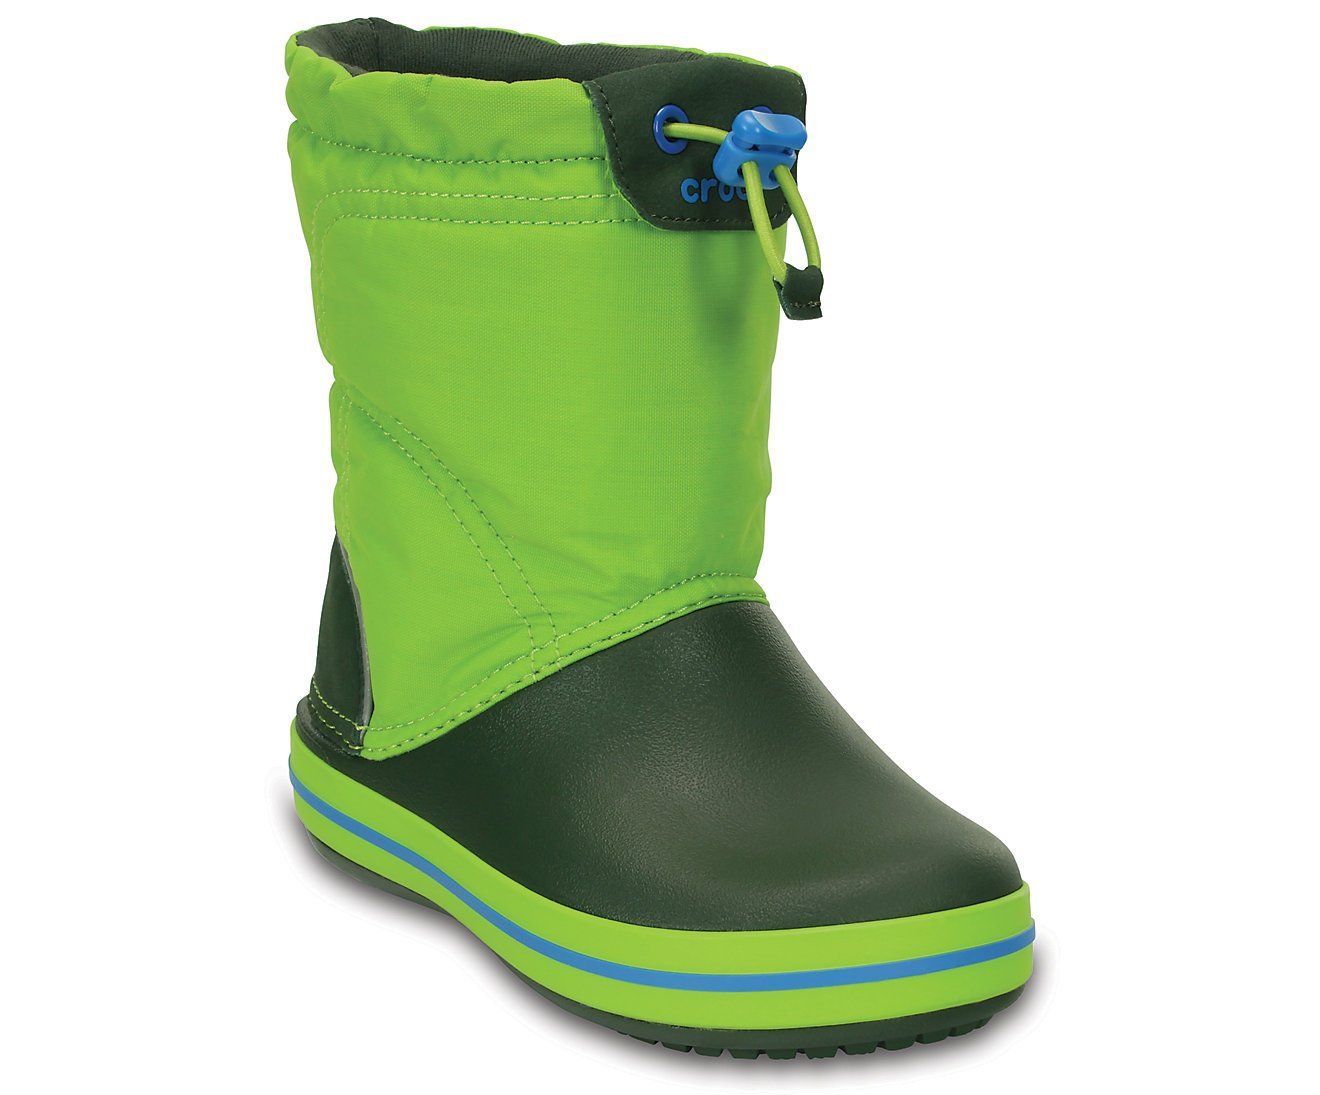 Crocs Clearance Sale - Up to 6...